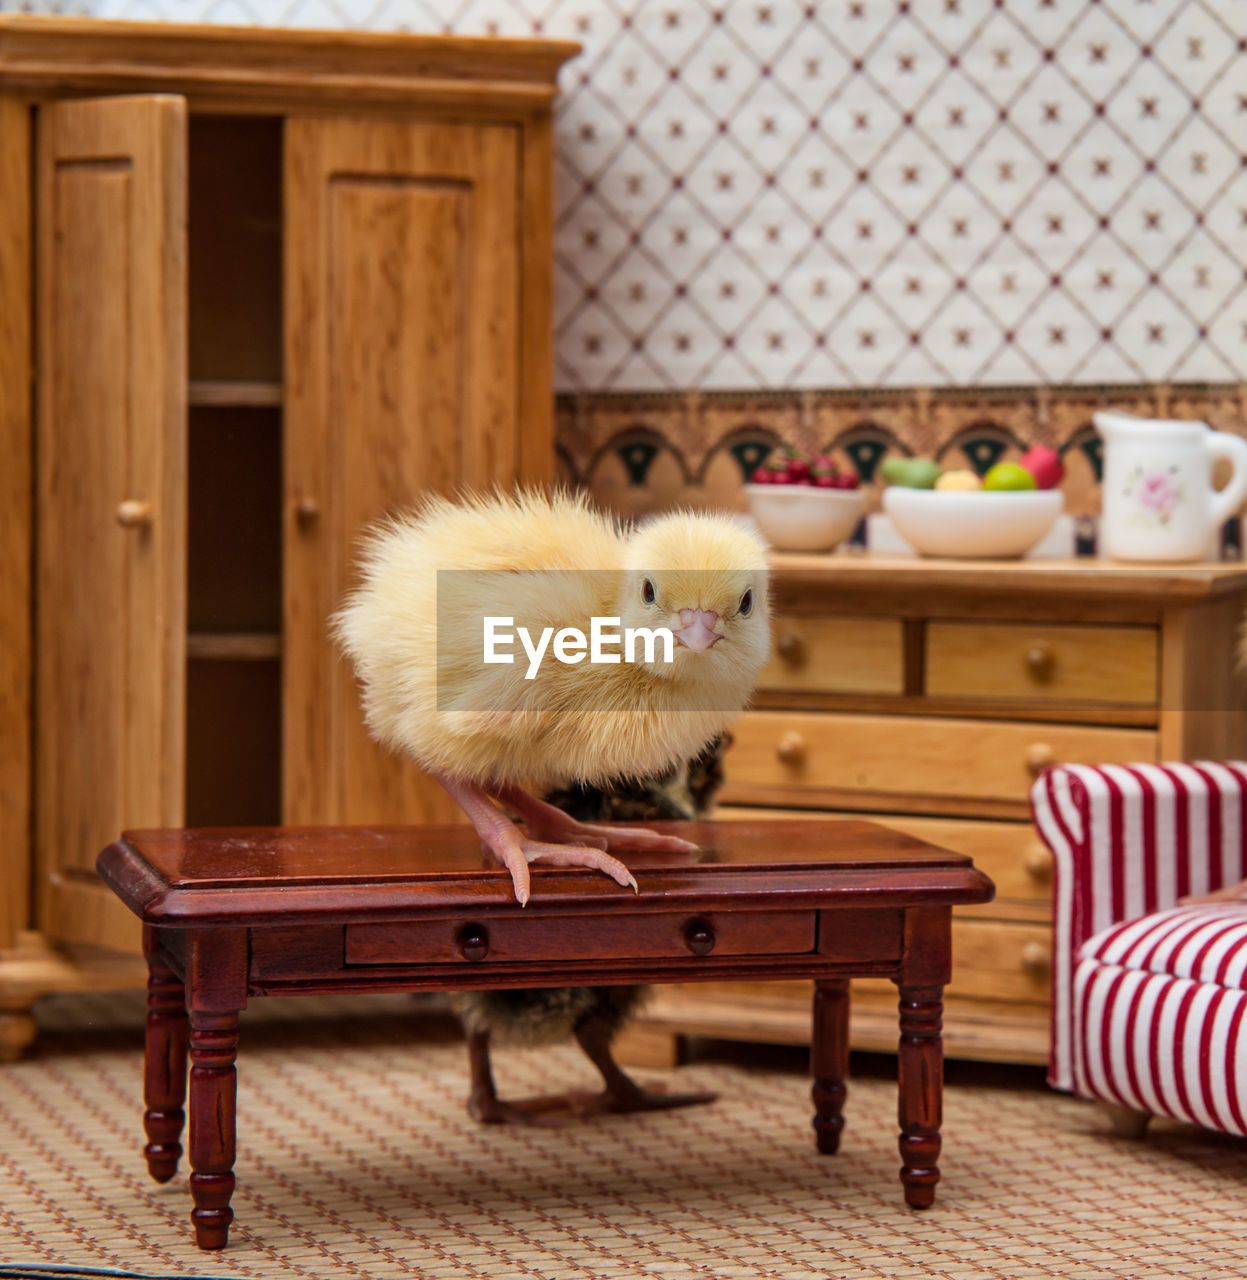 VIEW OF AN ANIMAL ON CHAIR